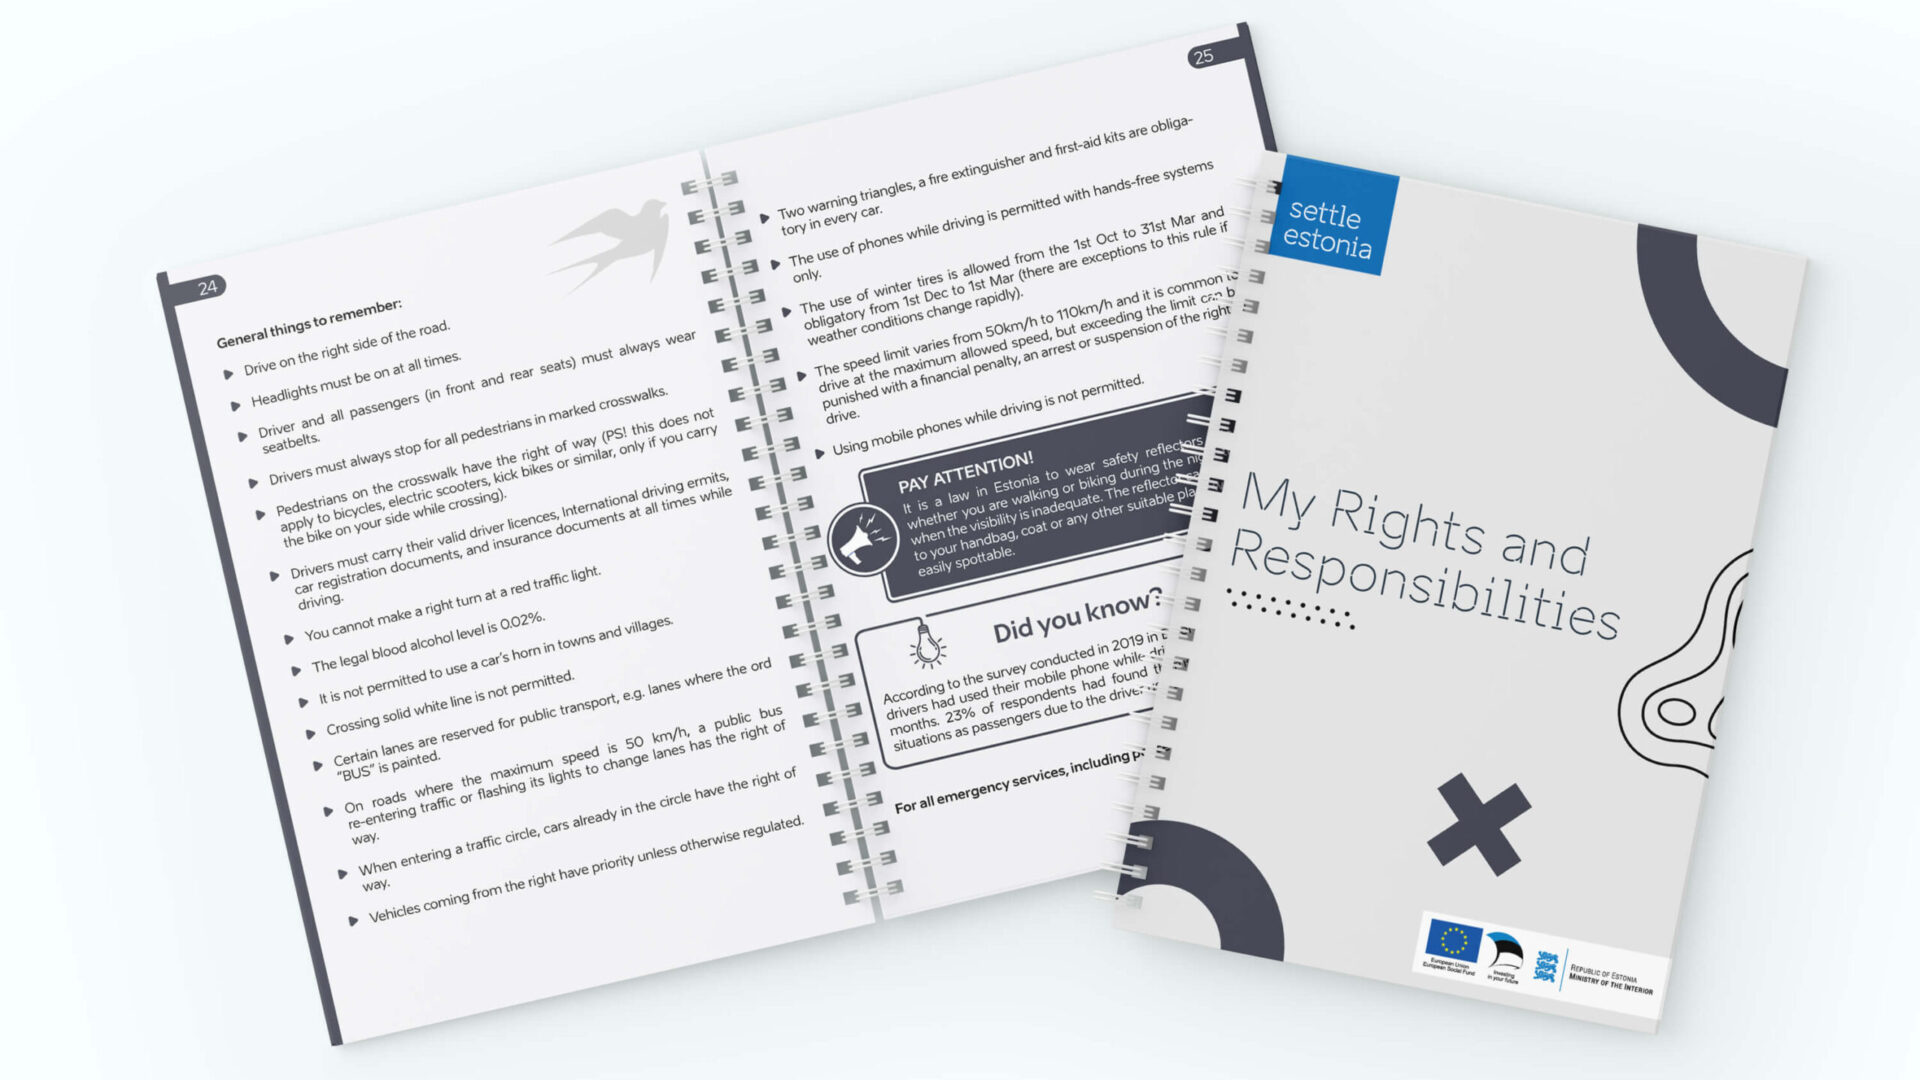 Settle in Estonia - My Rights and Responsibilities